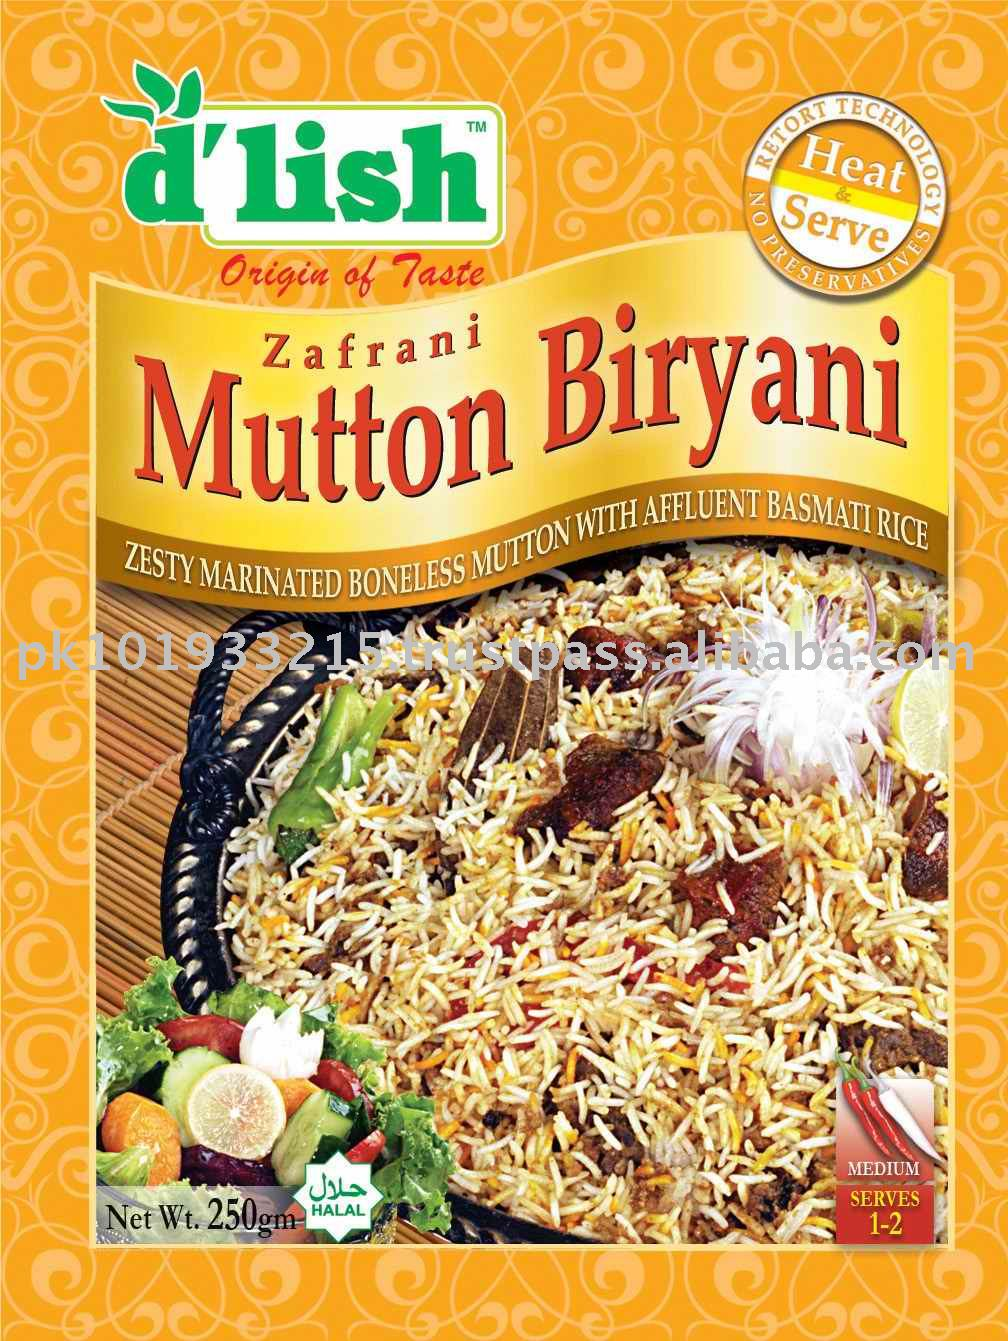 Ready To Eat Food Companies In Pakistan